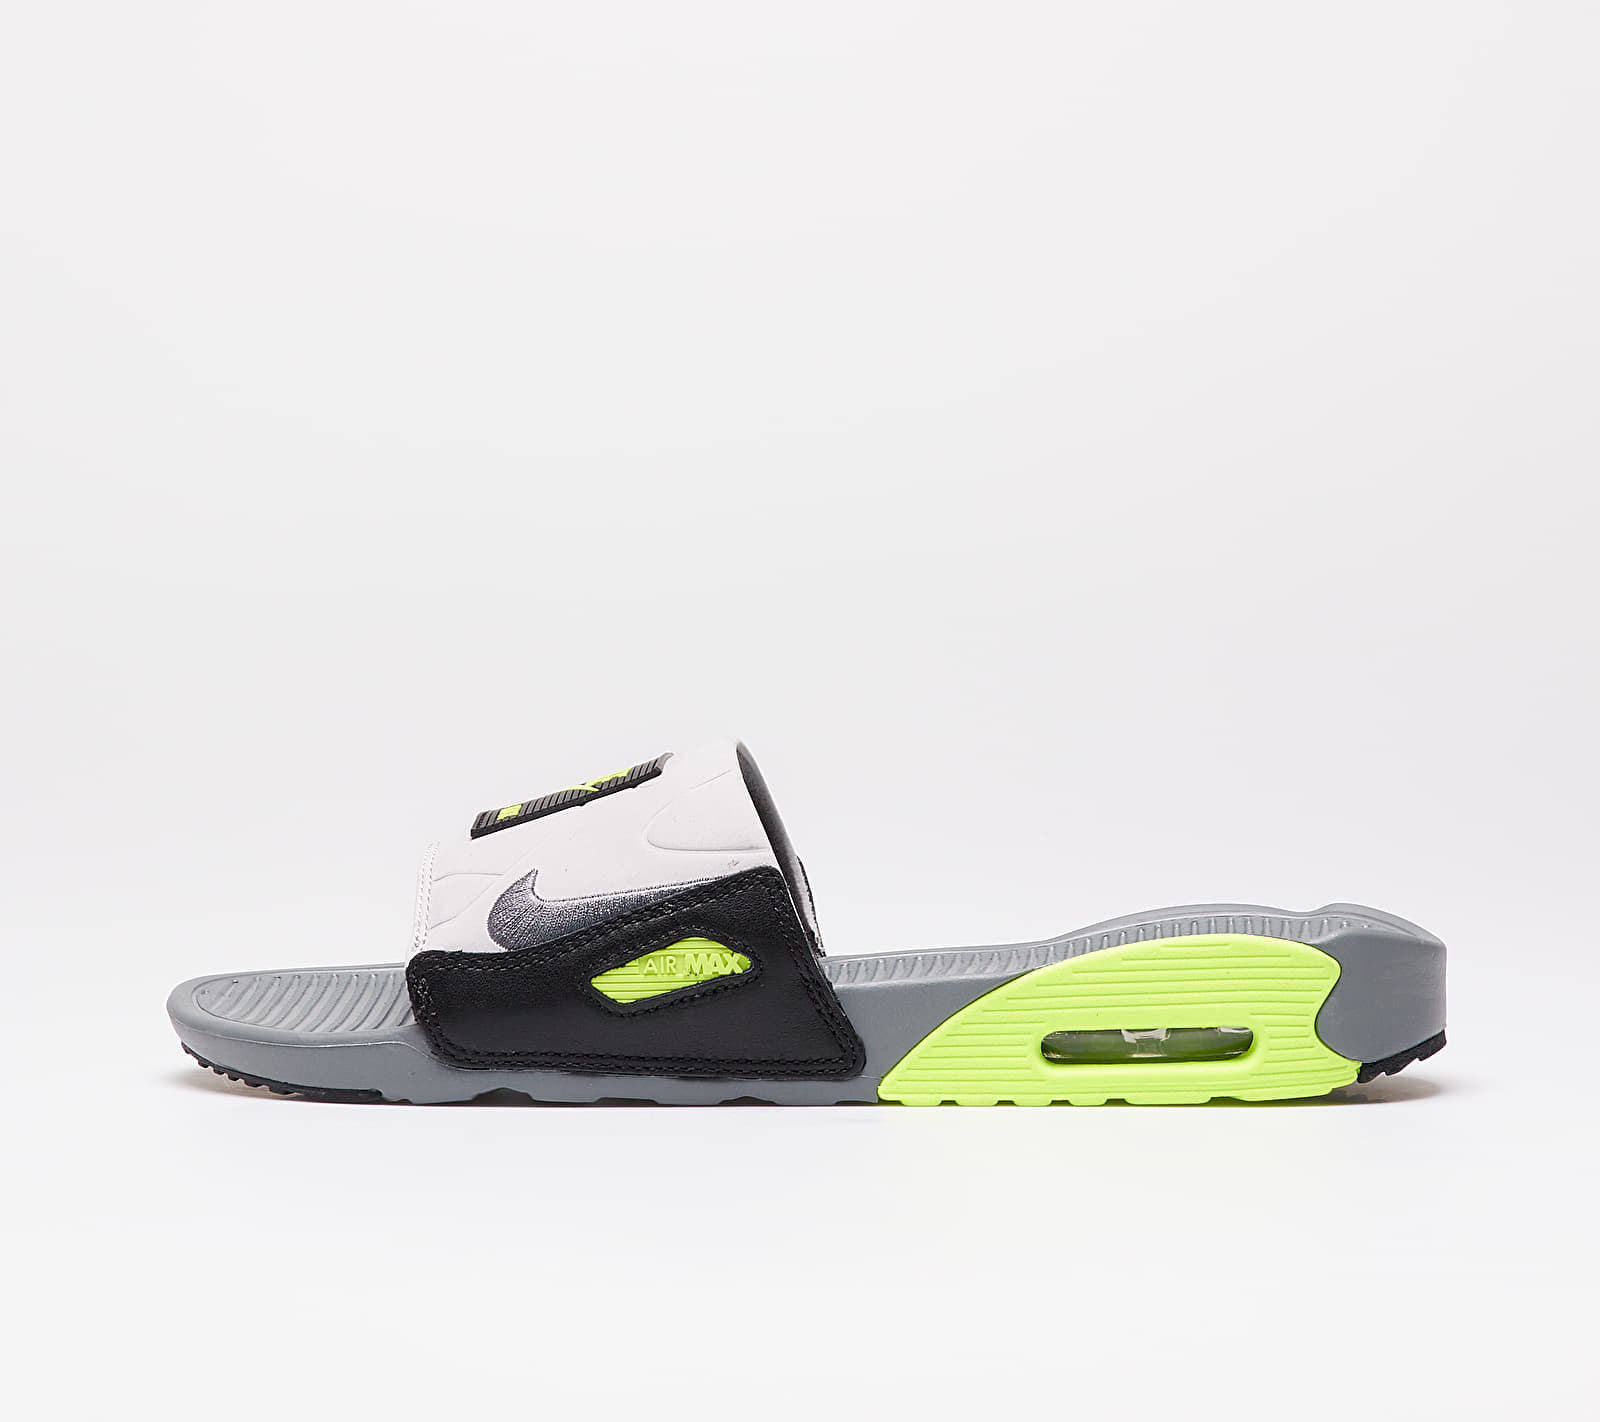 Nike Air Max 90 Slide Smoke Grey/ Smoke Grey-Volt-Black BQ4635-001